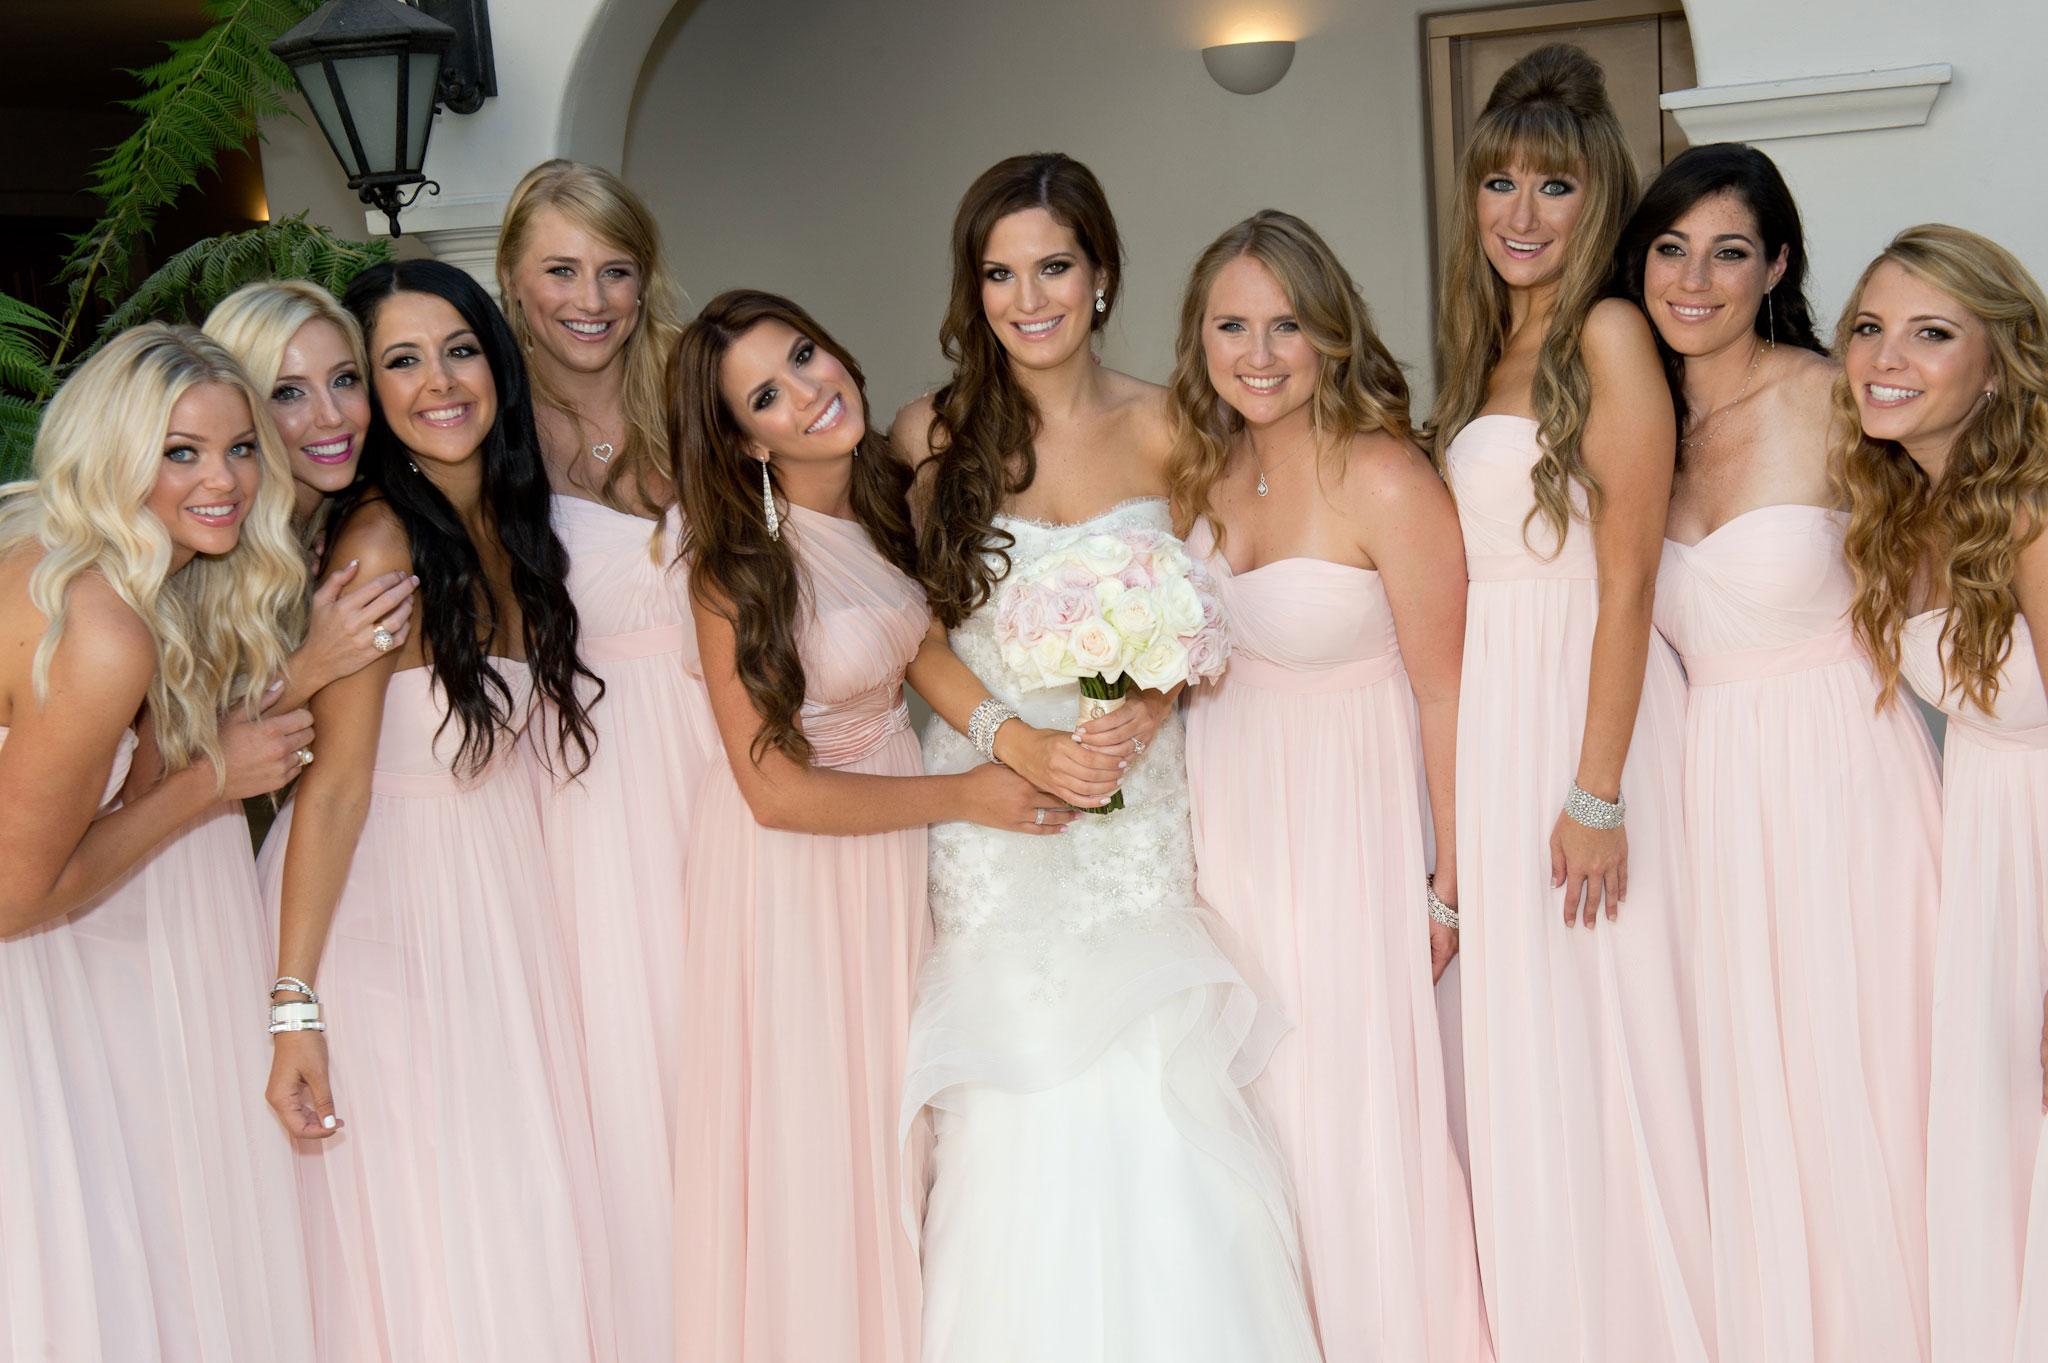 Bridesmaid dresses blush bridesmaid gowns from real weddings bride with strapless bridesmaid dresses long blush ombrellifo Images